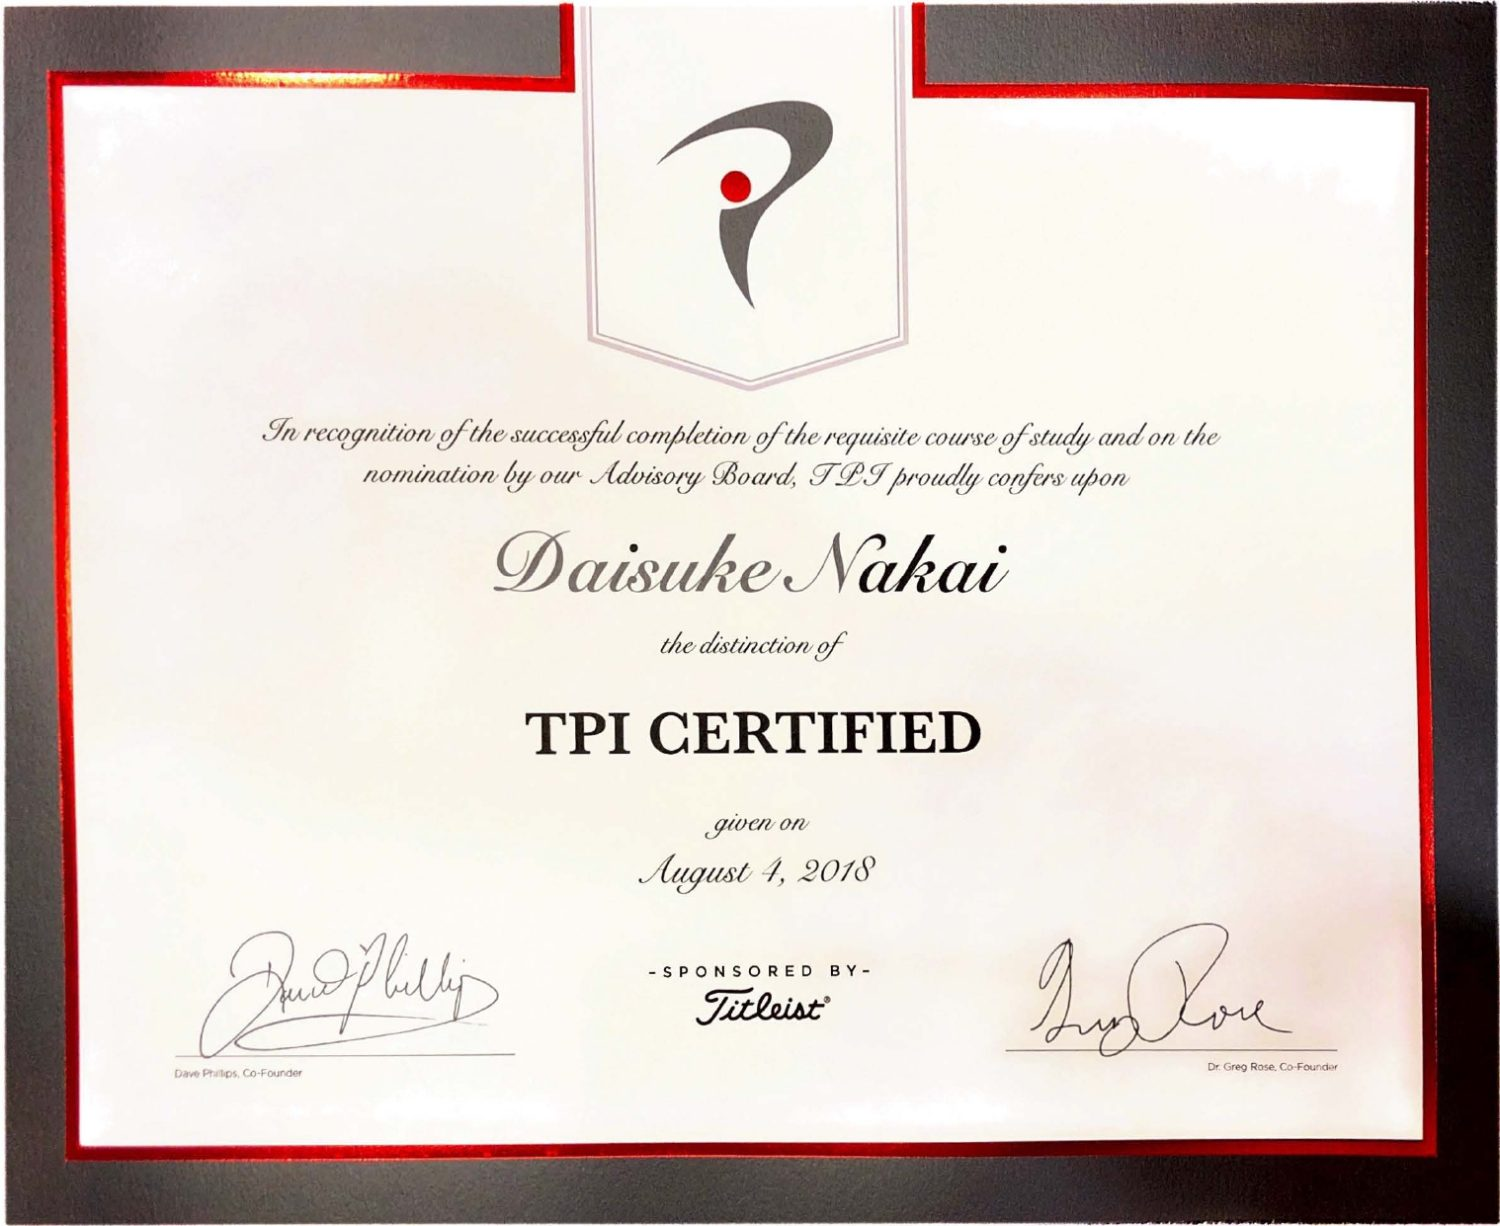 TPI CERTIFIED ライセンス認定証